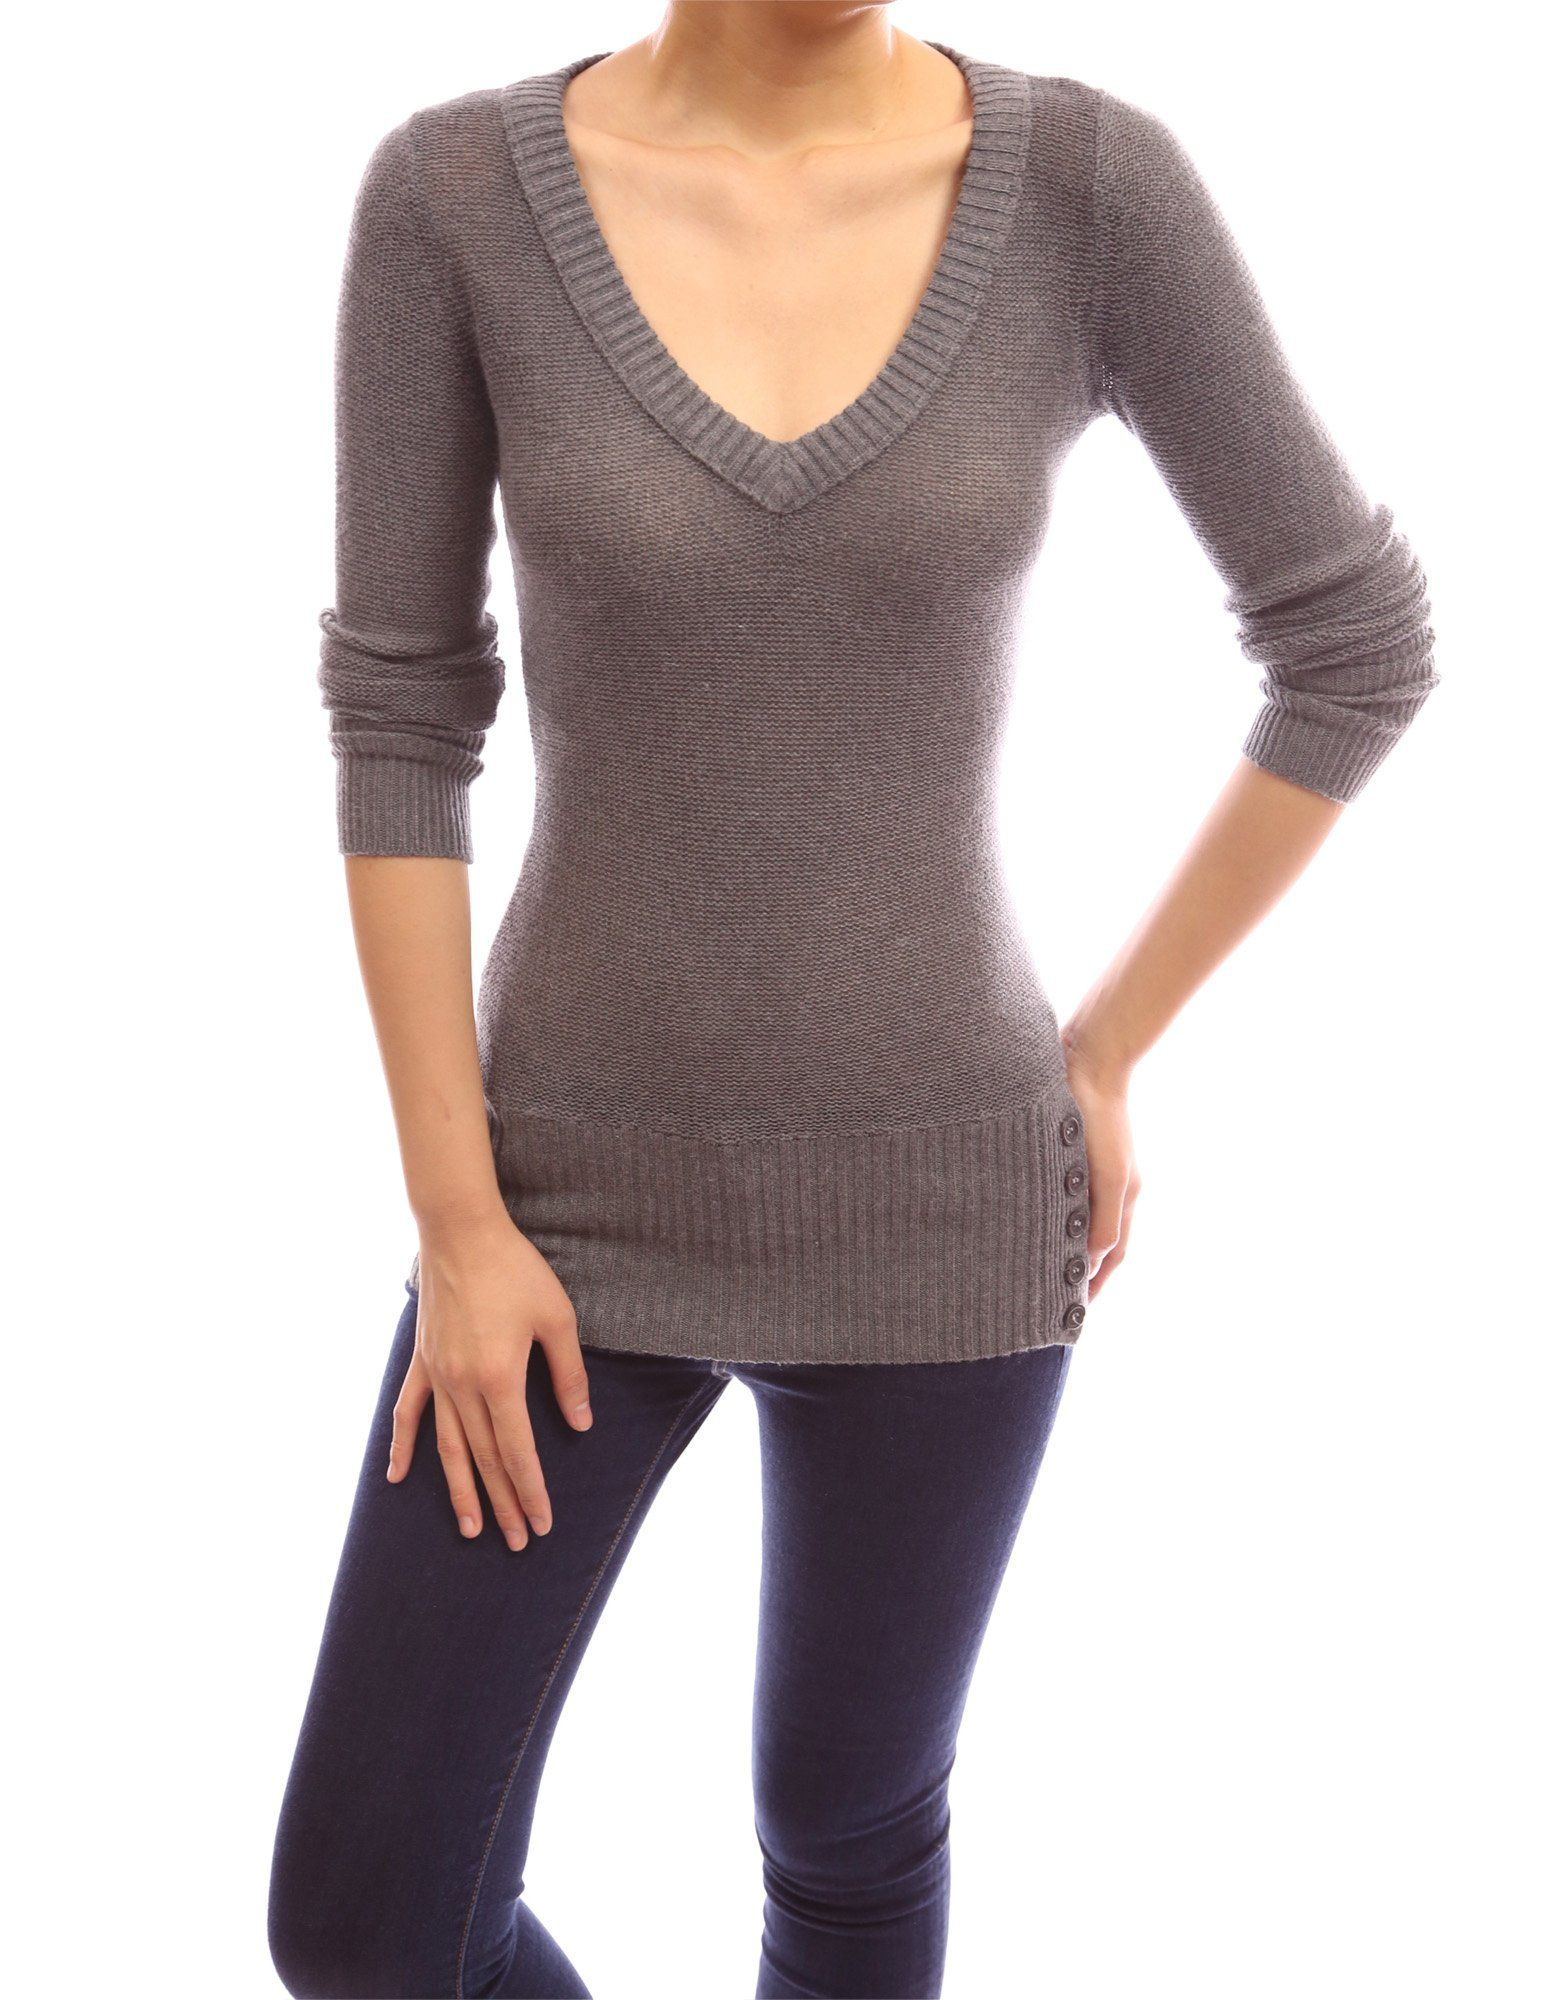 PattyBoutik V Neck Long Sleeve Ribbed Hem Button Detail Knitwear Tunic  Sweater at Amazon Women s Clothing store  927b28ddc